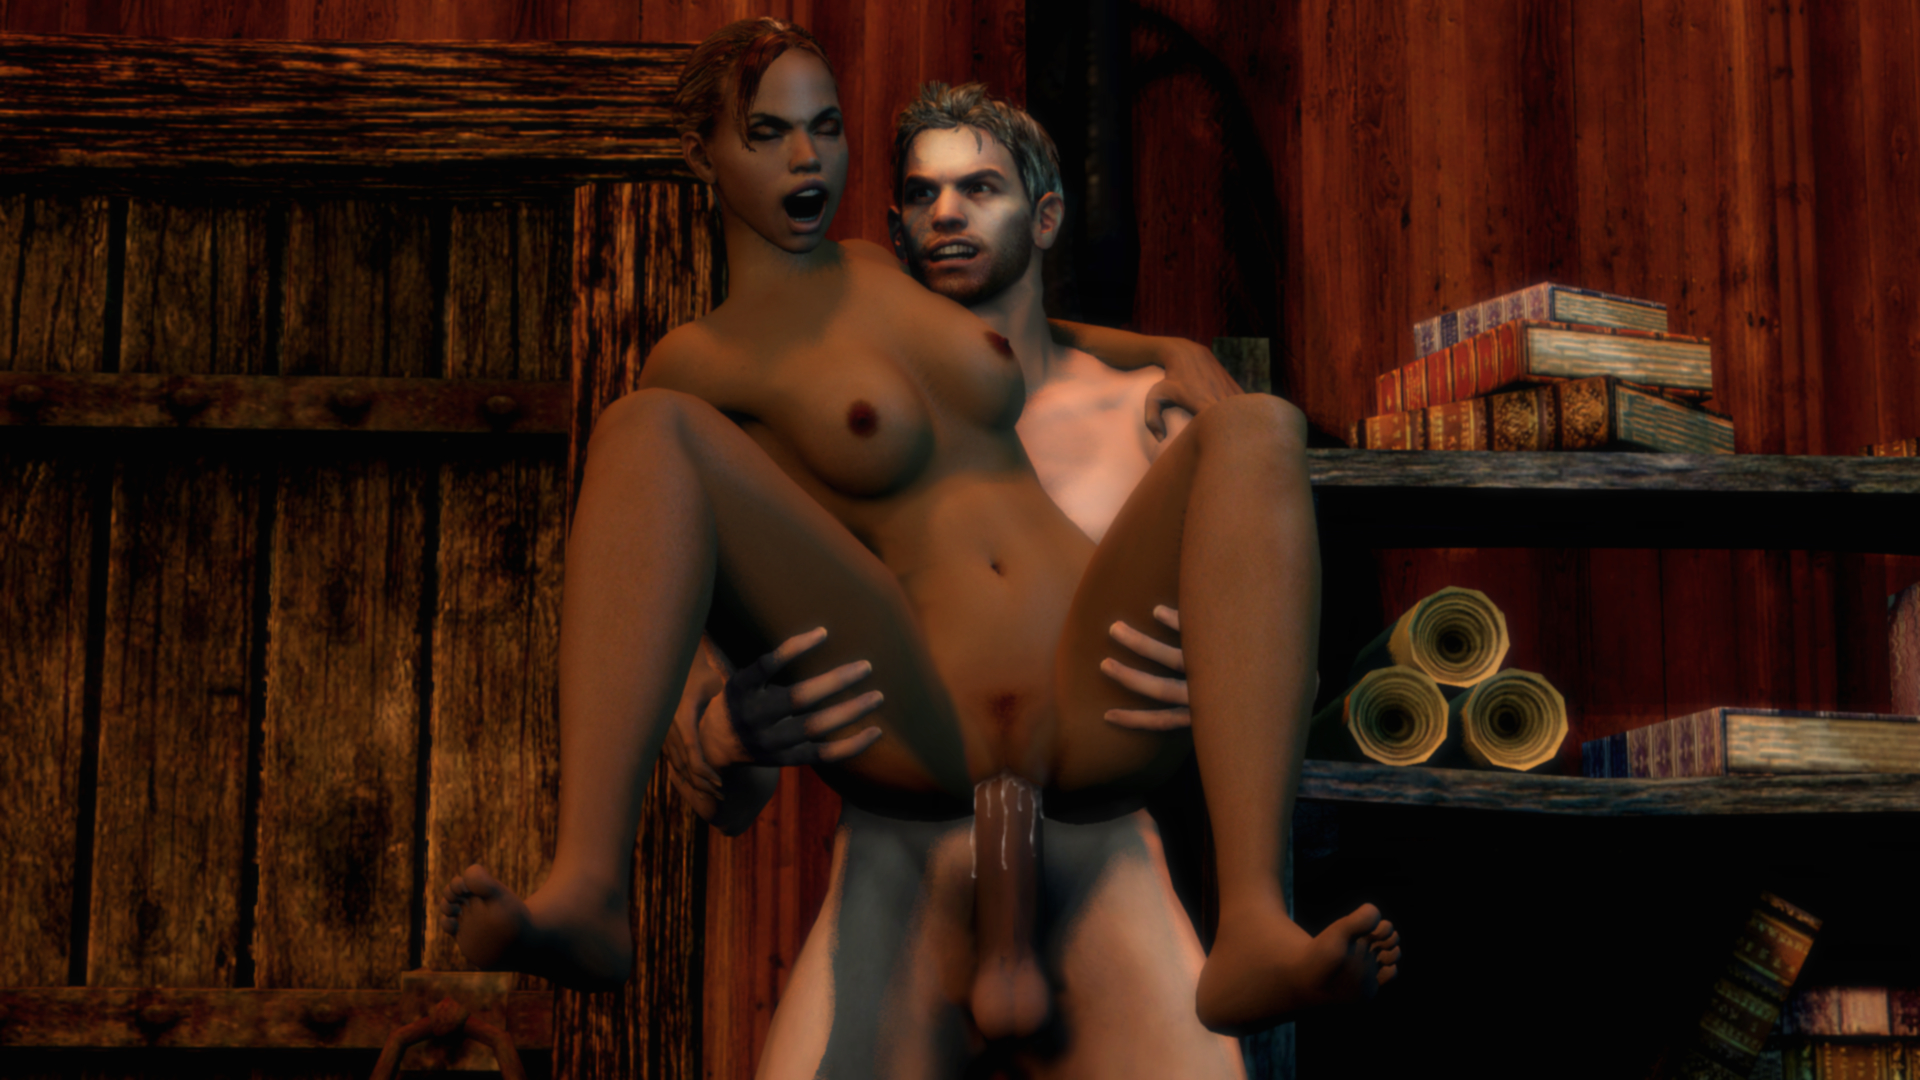 Sheva alomar uncensored fucks images